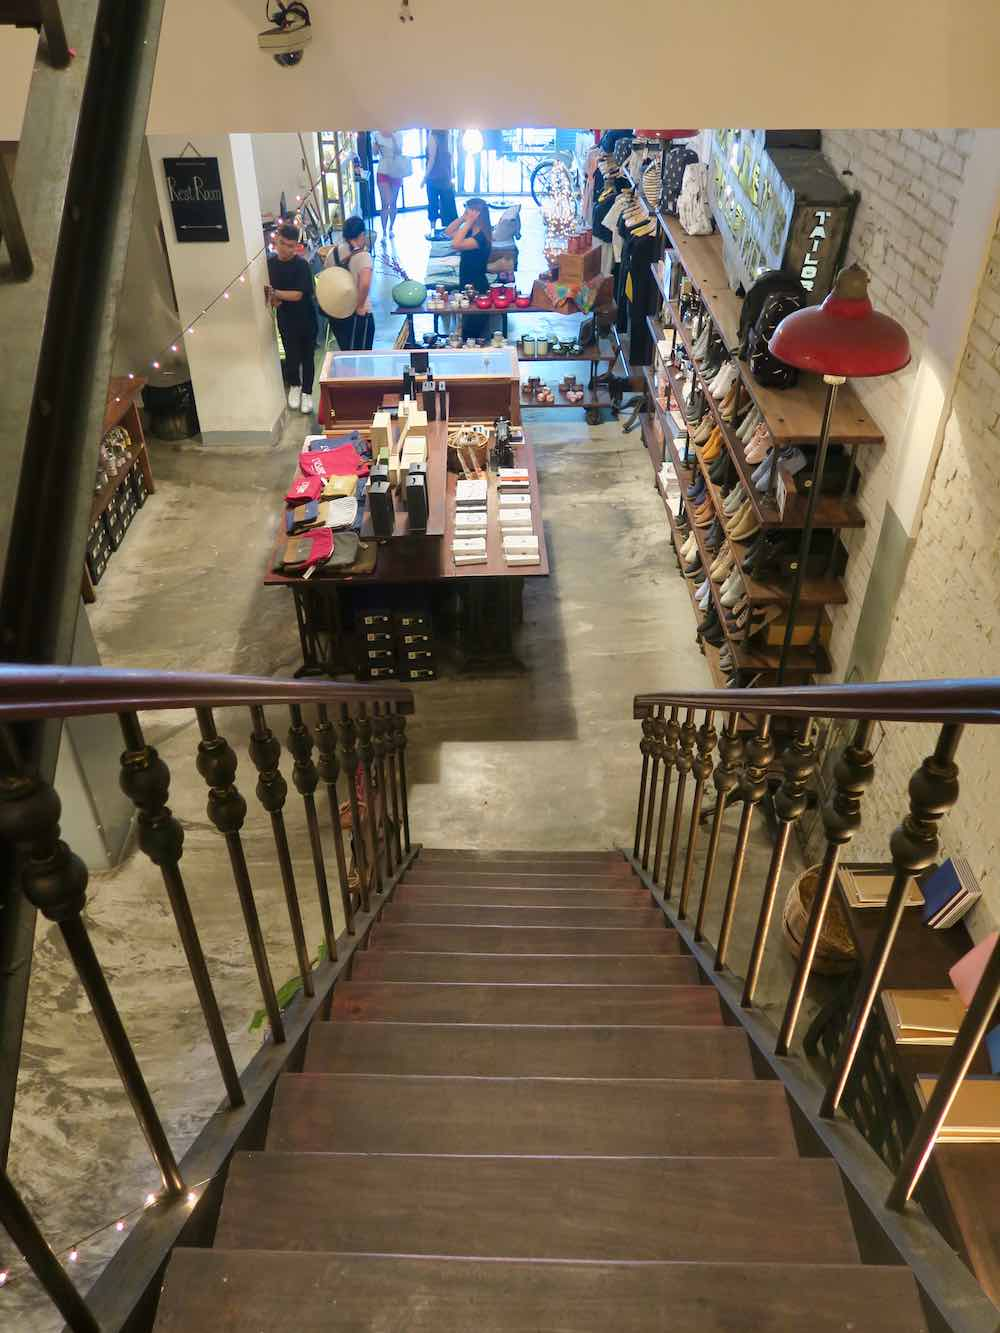 Stairs from the shop to the Cafeteria in L'Usine le Loi Saigon |curlytraveller.com